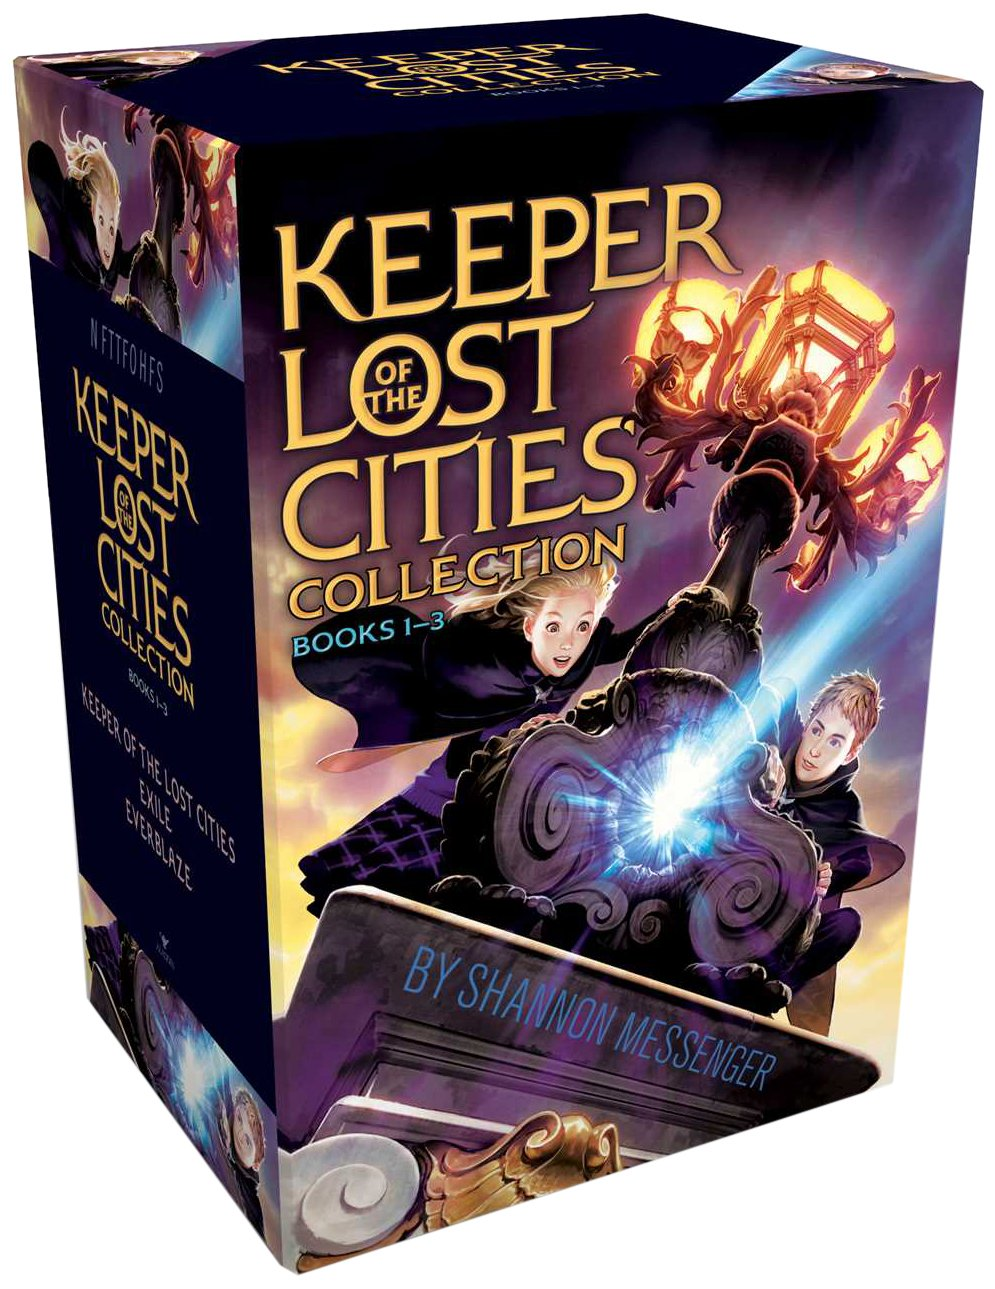 Keeper Of The Lost Cities Collection Books 13: Keeper Of The Lost Cities;  Exile; Everblaze: Shannon Messenger: 9781481451123: Amazon: Books